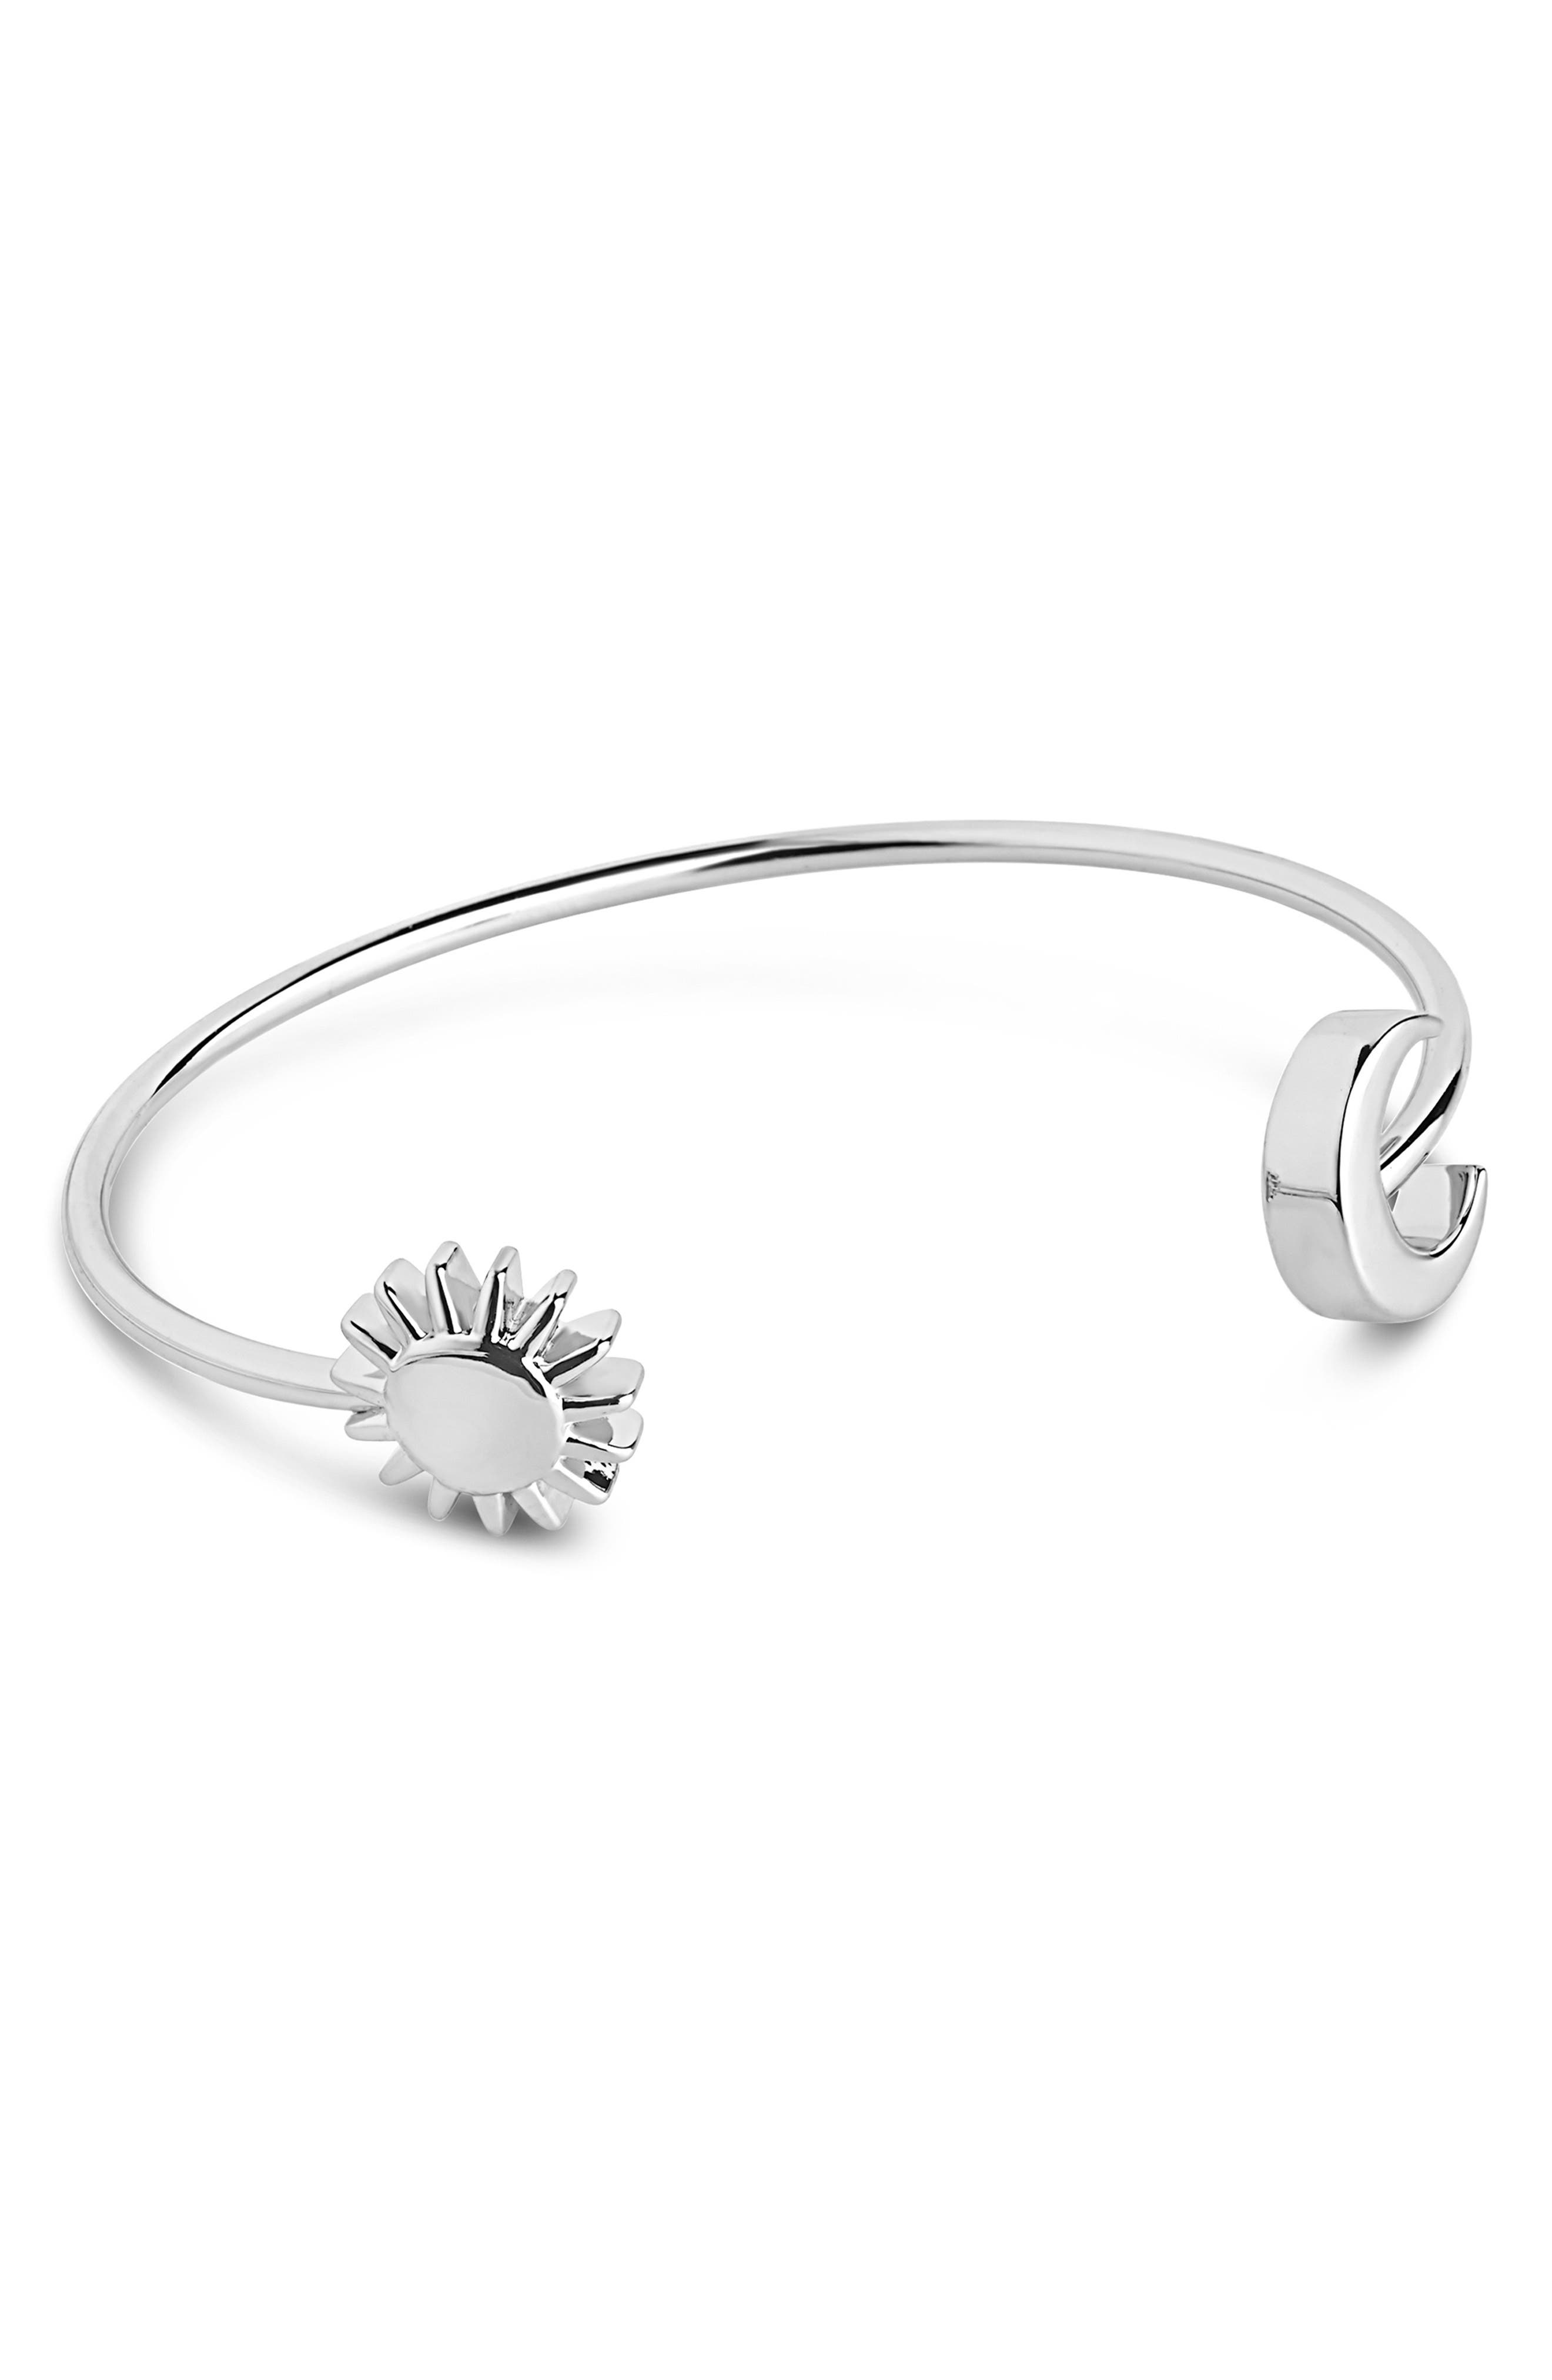 This slim rhodium-plated cuff will gleam on your wrist from morning \\\'til night. Style Name: Sterling Forever Crescent Moon & Sun Cuff Bracelet. Style Number: 5845461. Available in stores.